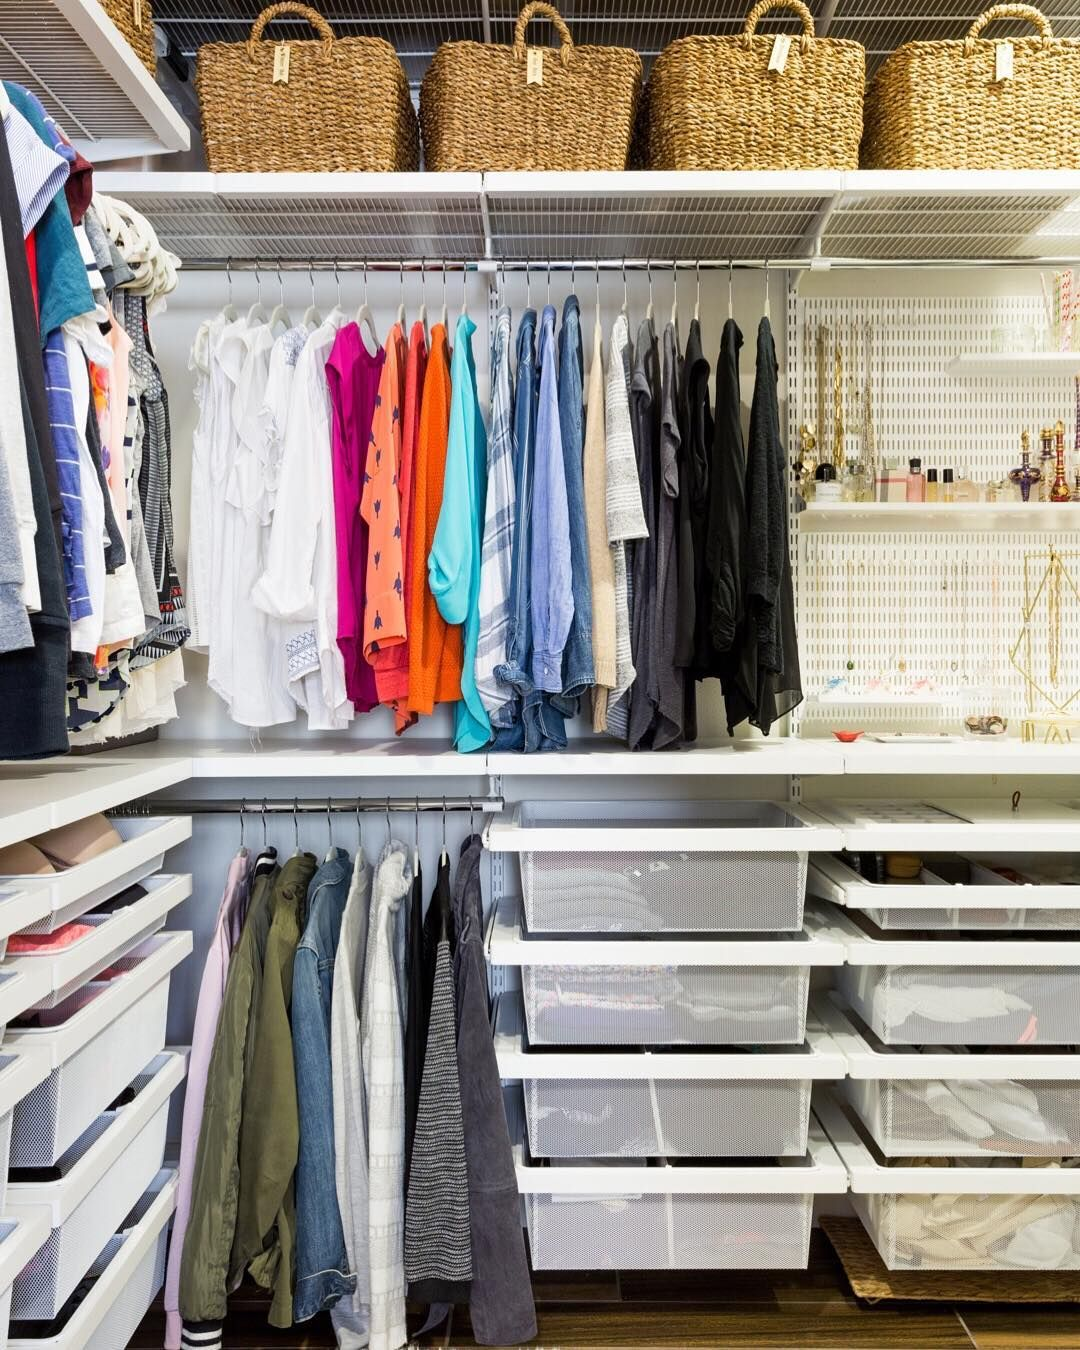 5 Brilliant Organization Ideas To Steal From The Tidiest